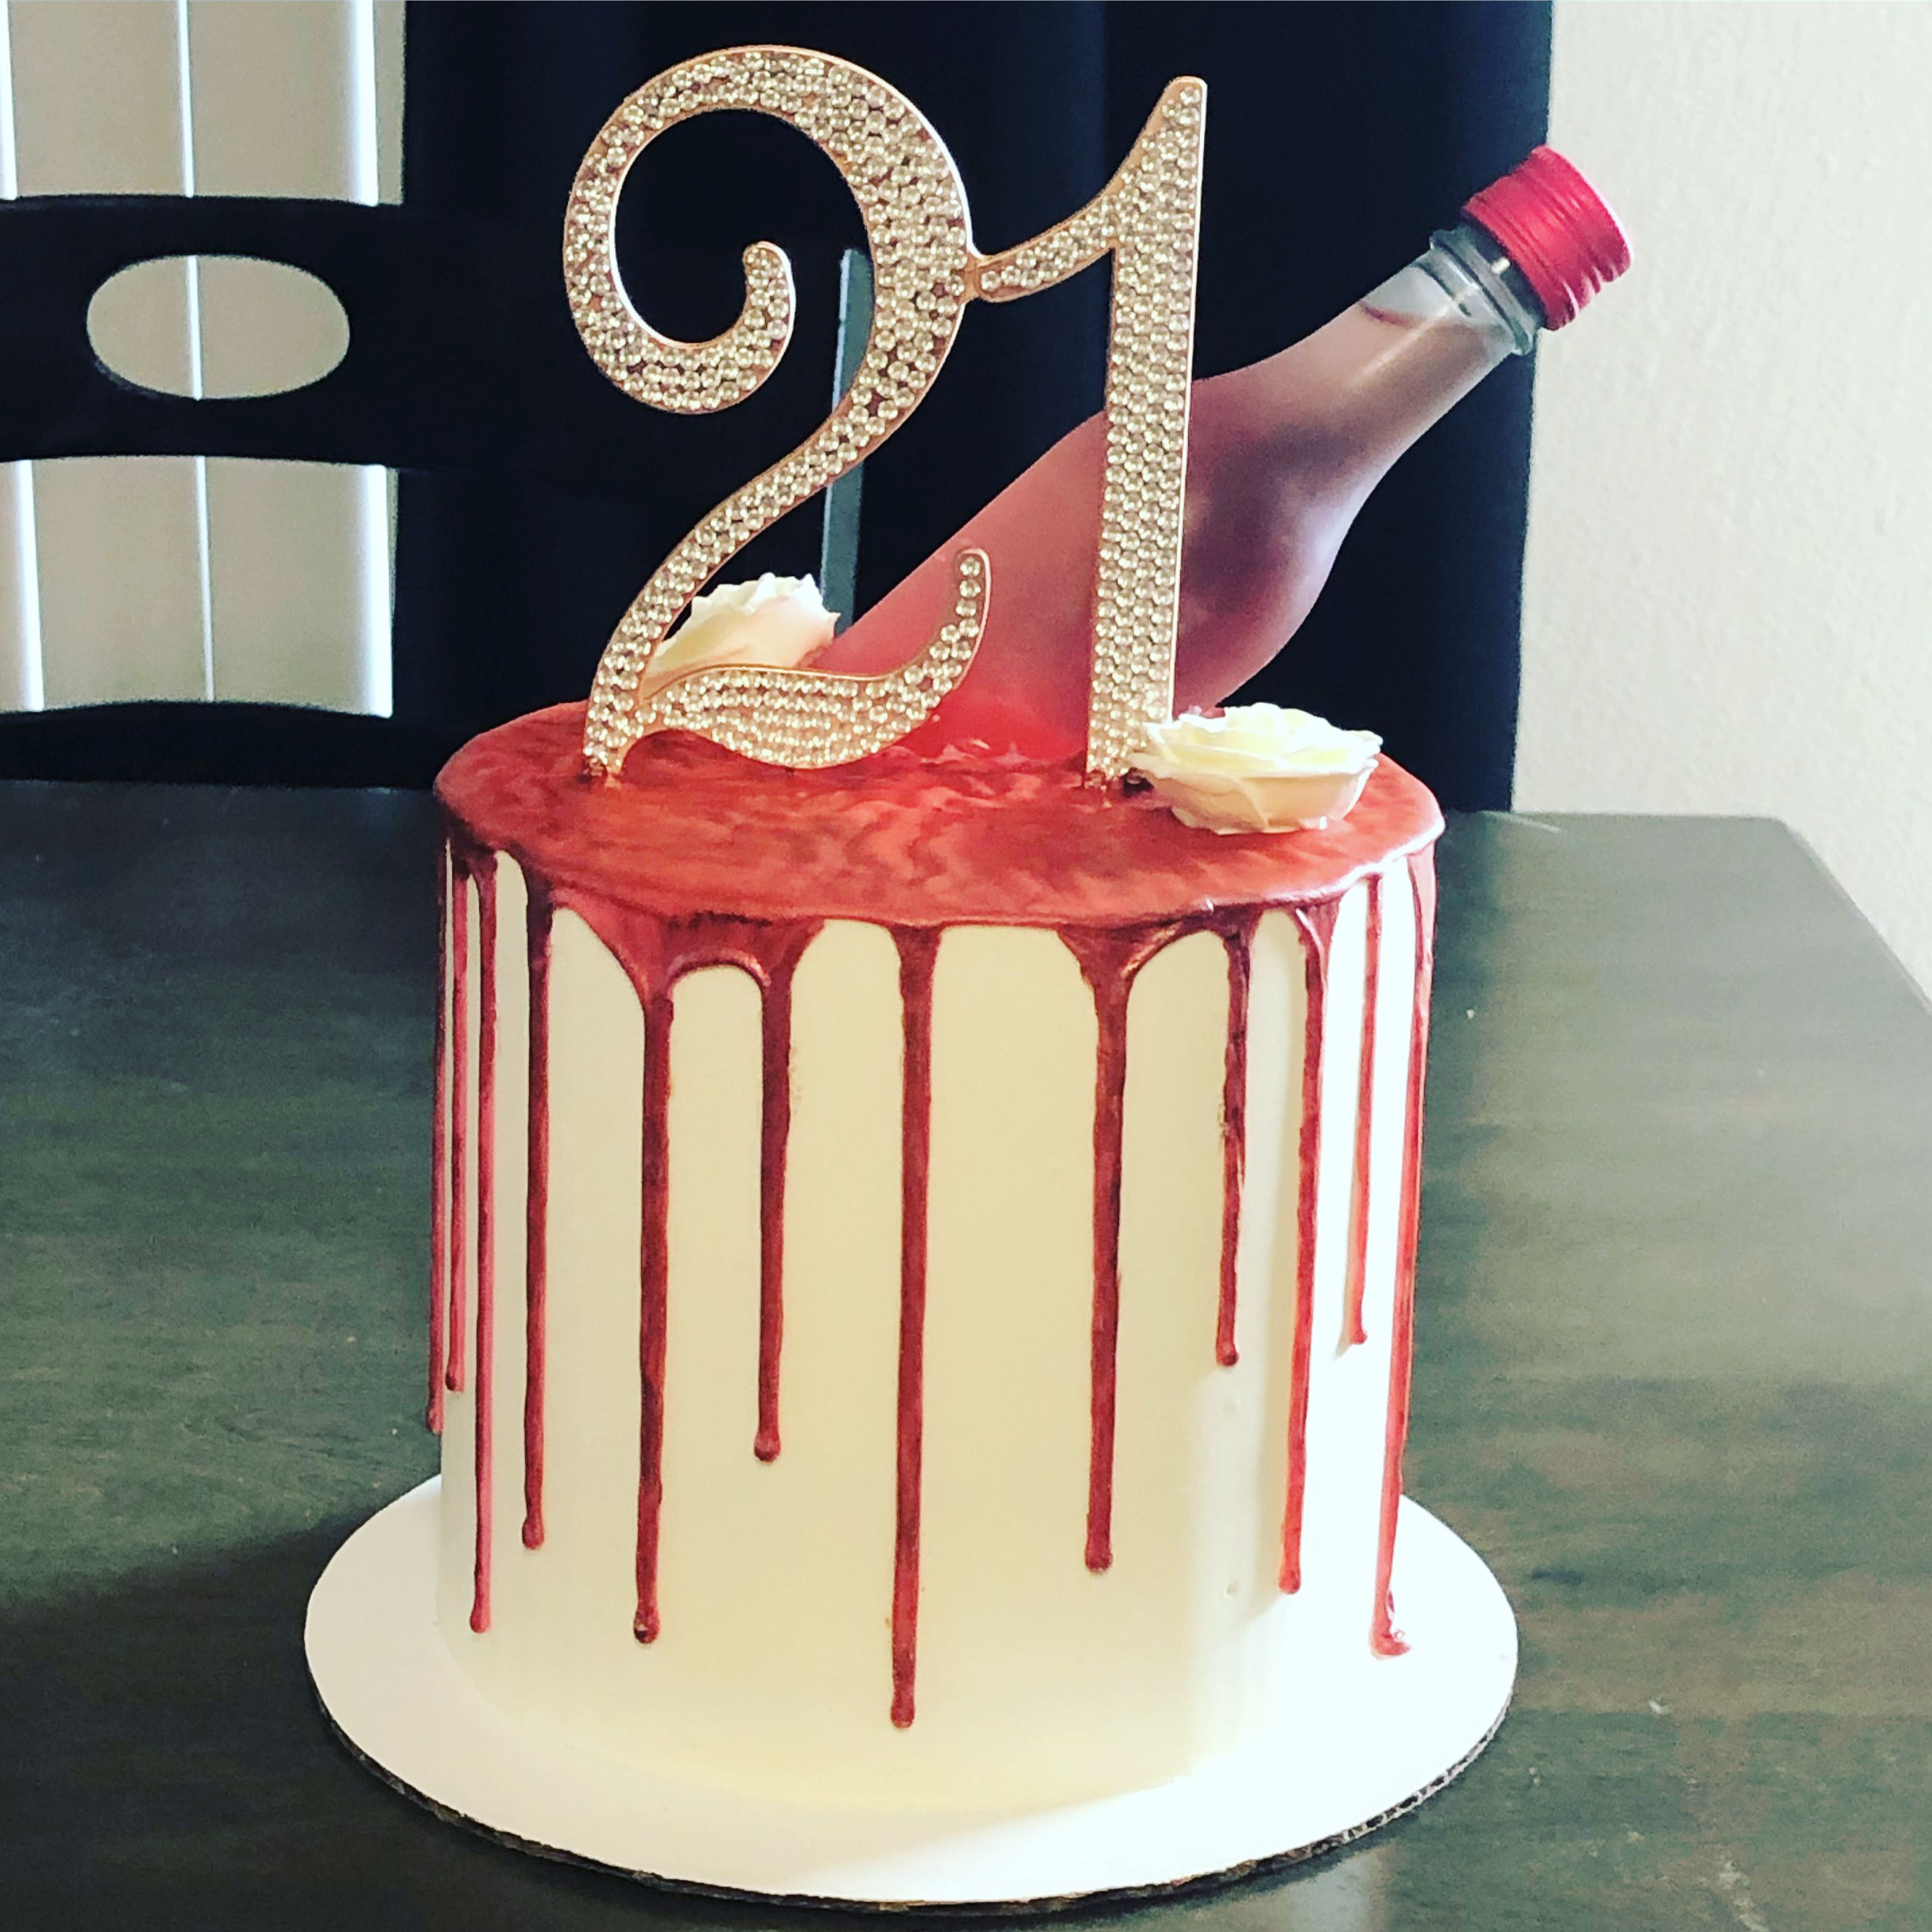 21st Birthday Cake With Insert Wine Bottle In 2020 21st Birthday Cake Cake Birthday Cake